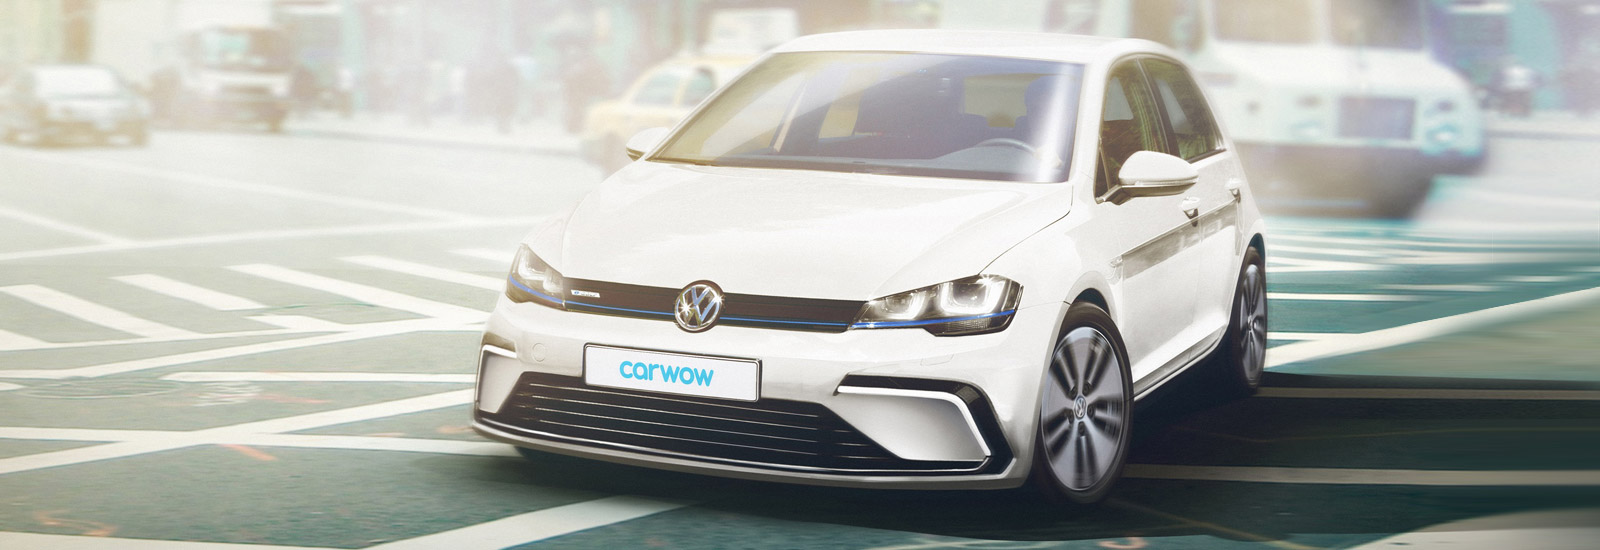 2018 volkswagen e golf release date. beautiful date 2019 new vw egolf mk8 render by carwow intended 2018 volkswagen e golf release date